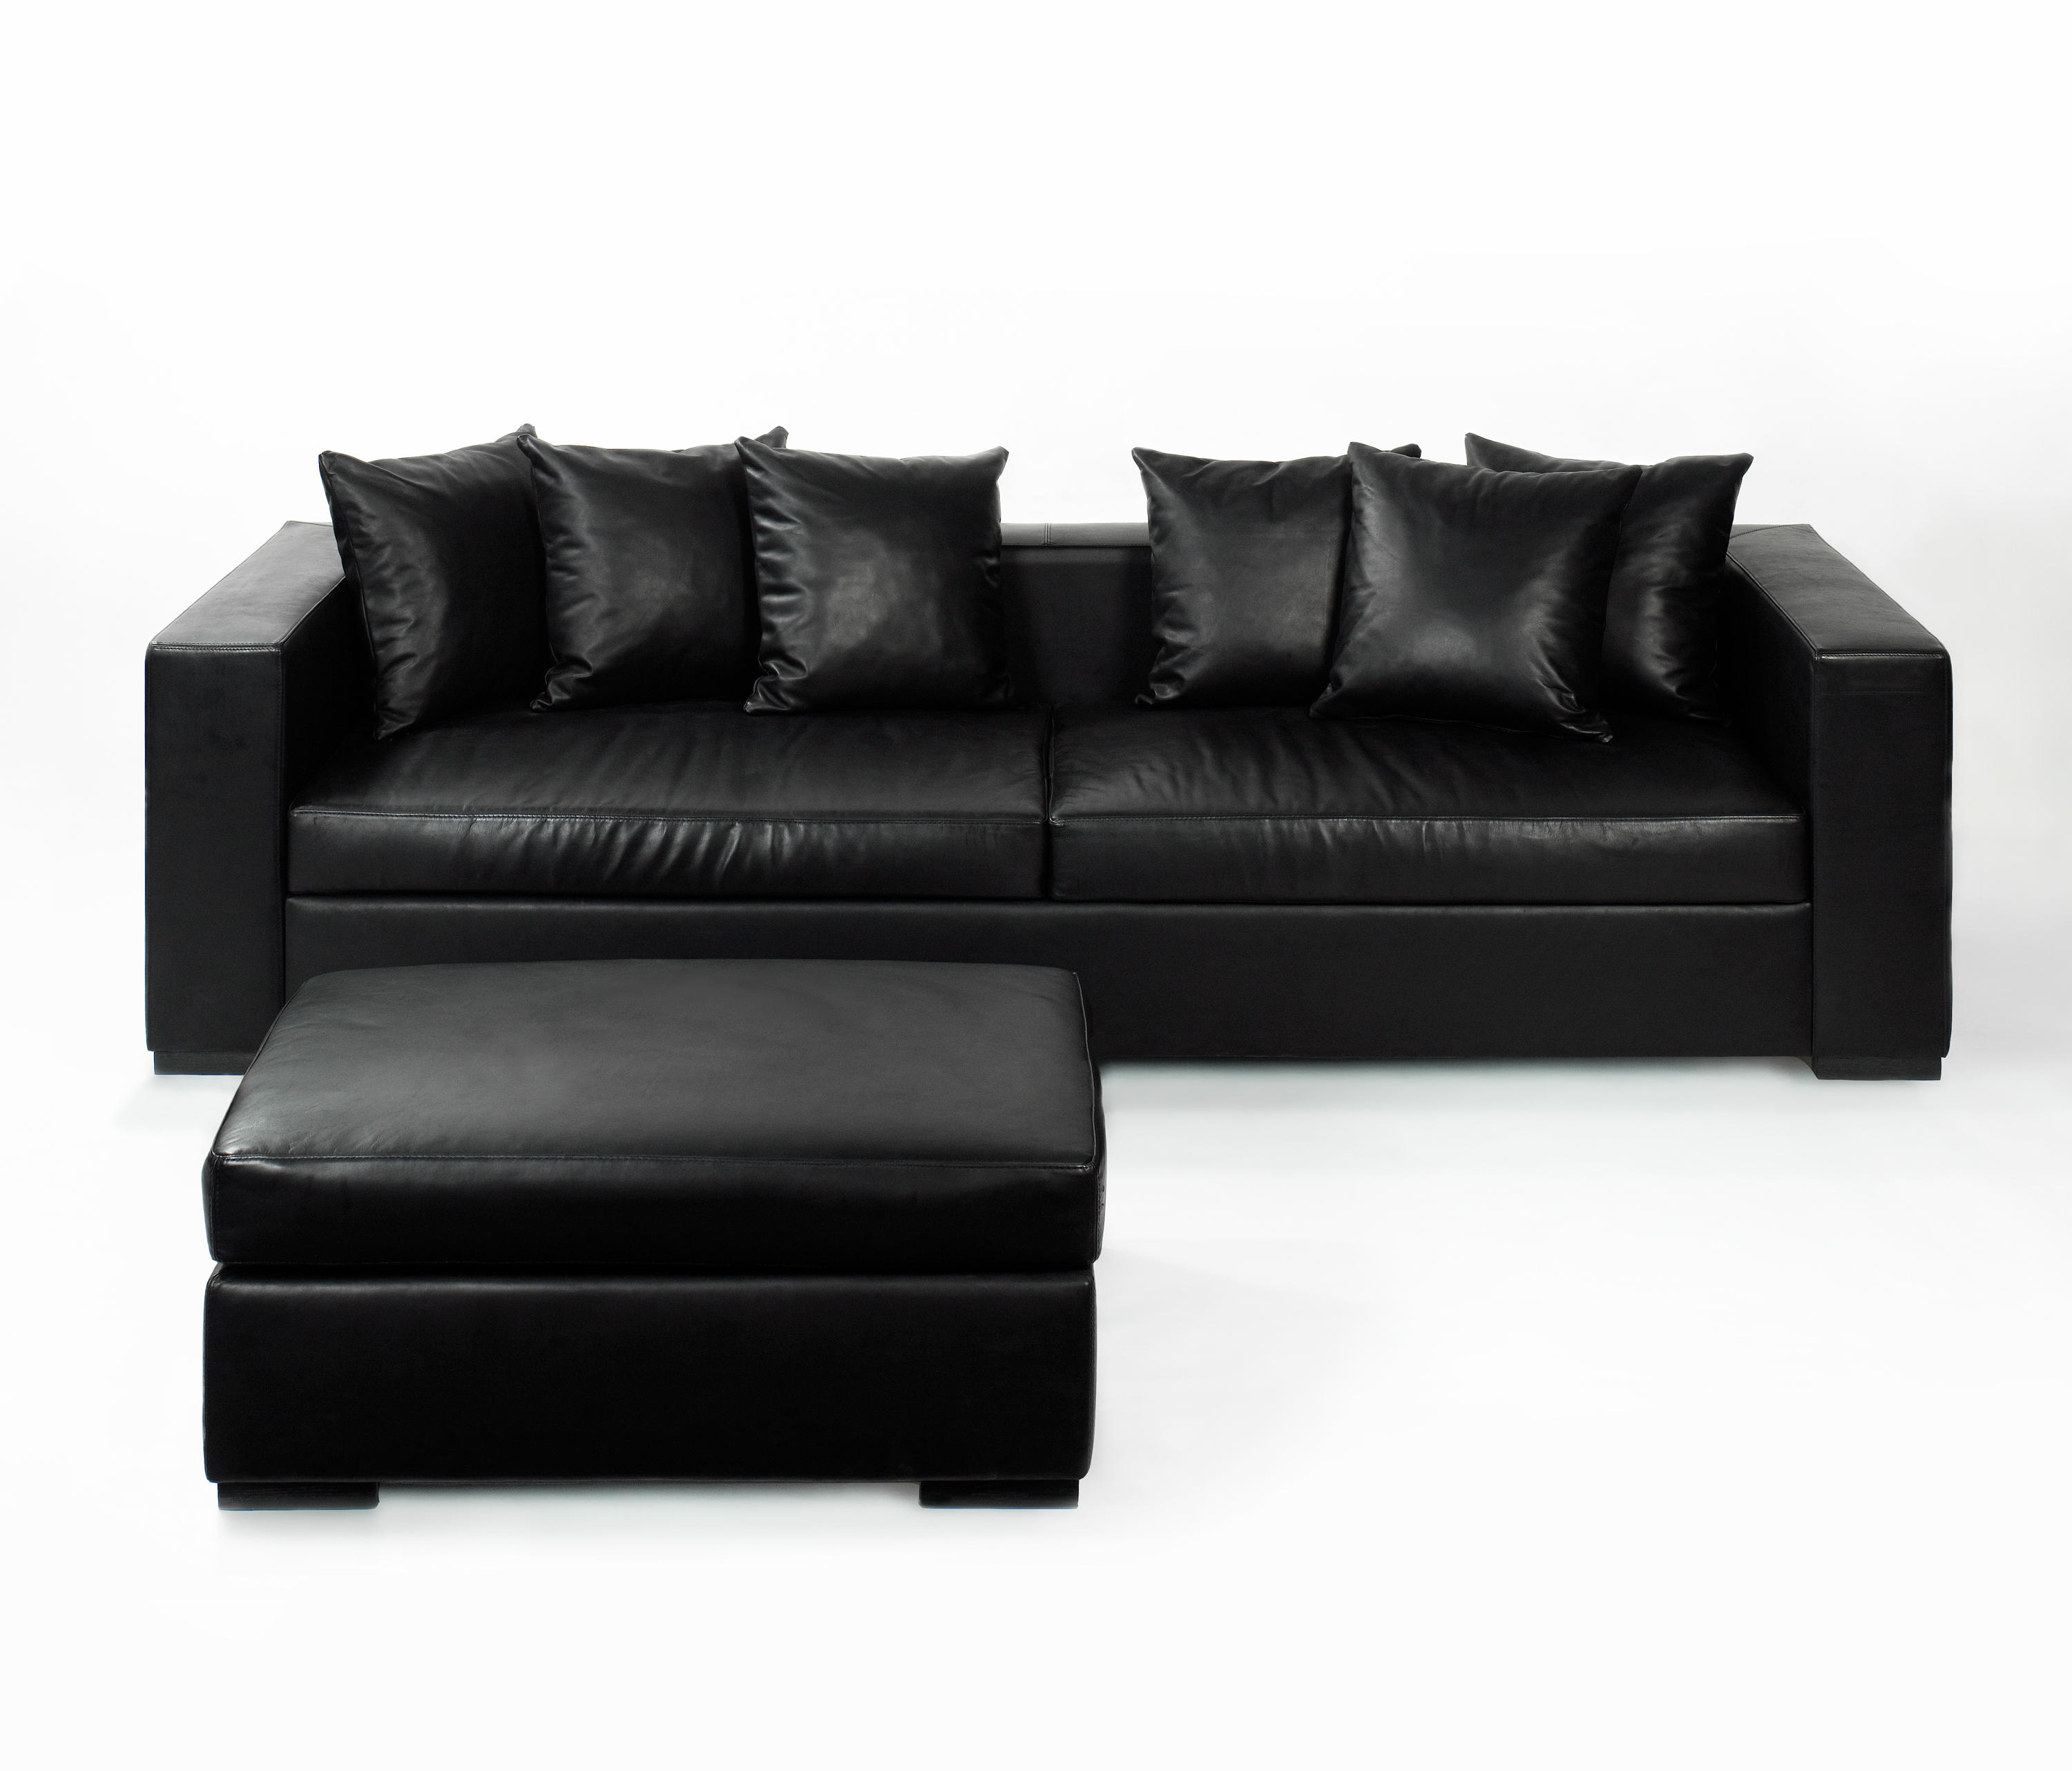 keating sofa 260 lounge sofas from lambert architonic. Black Bedroom Furniture Sets. Home Design Ideas